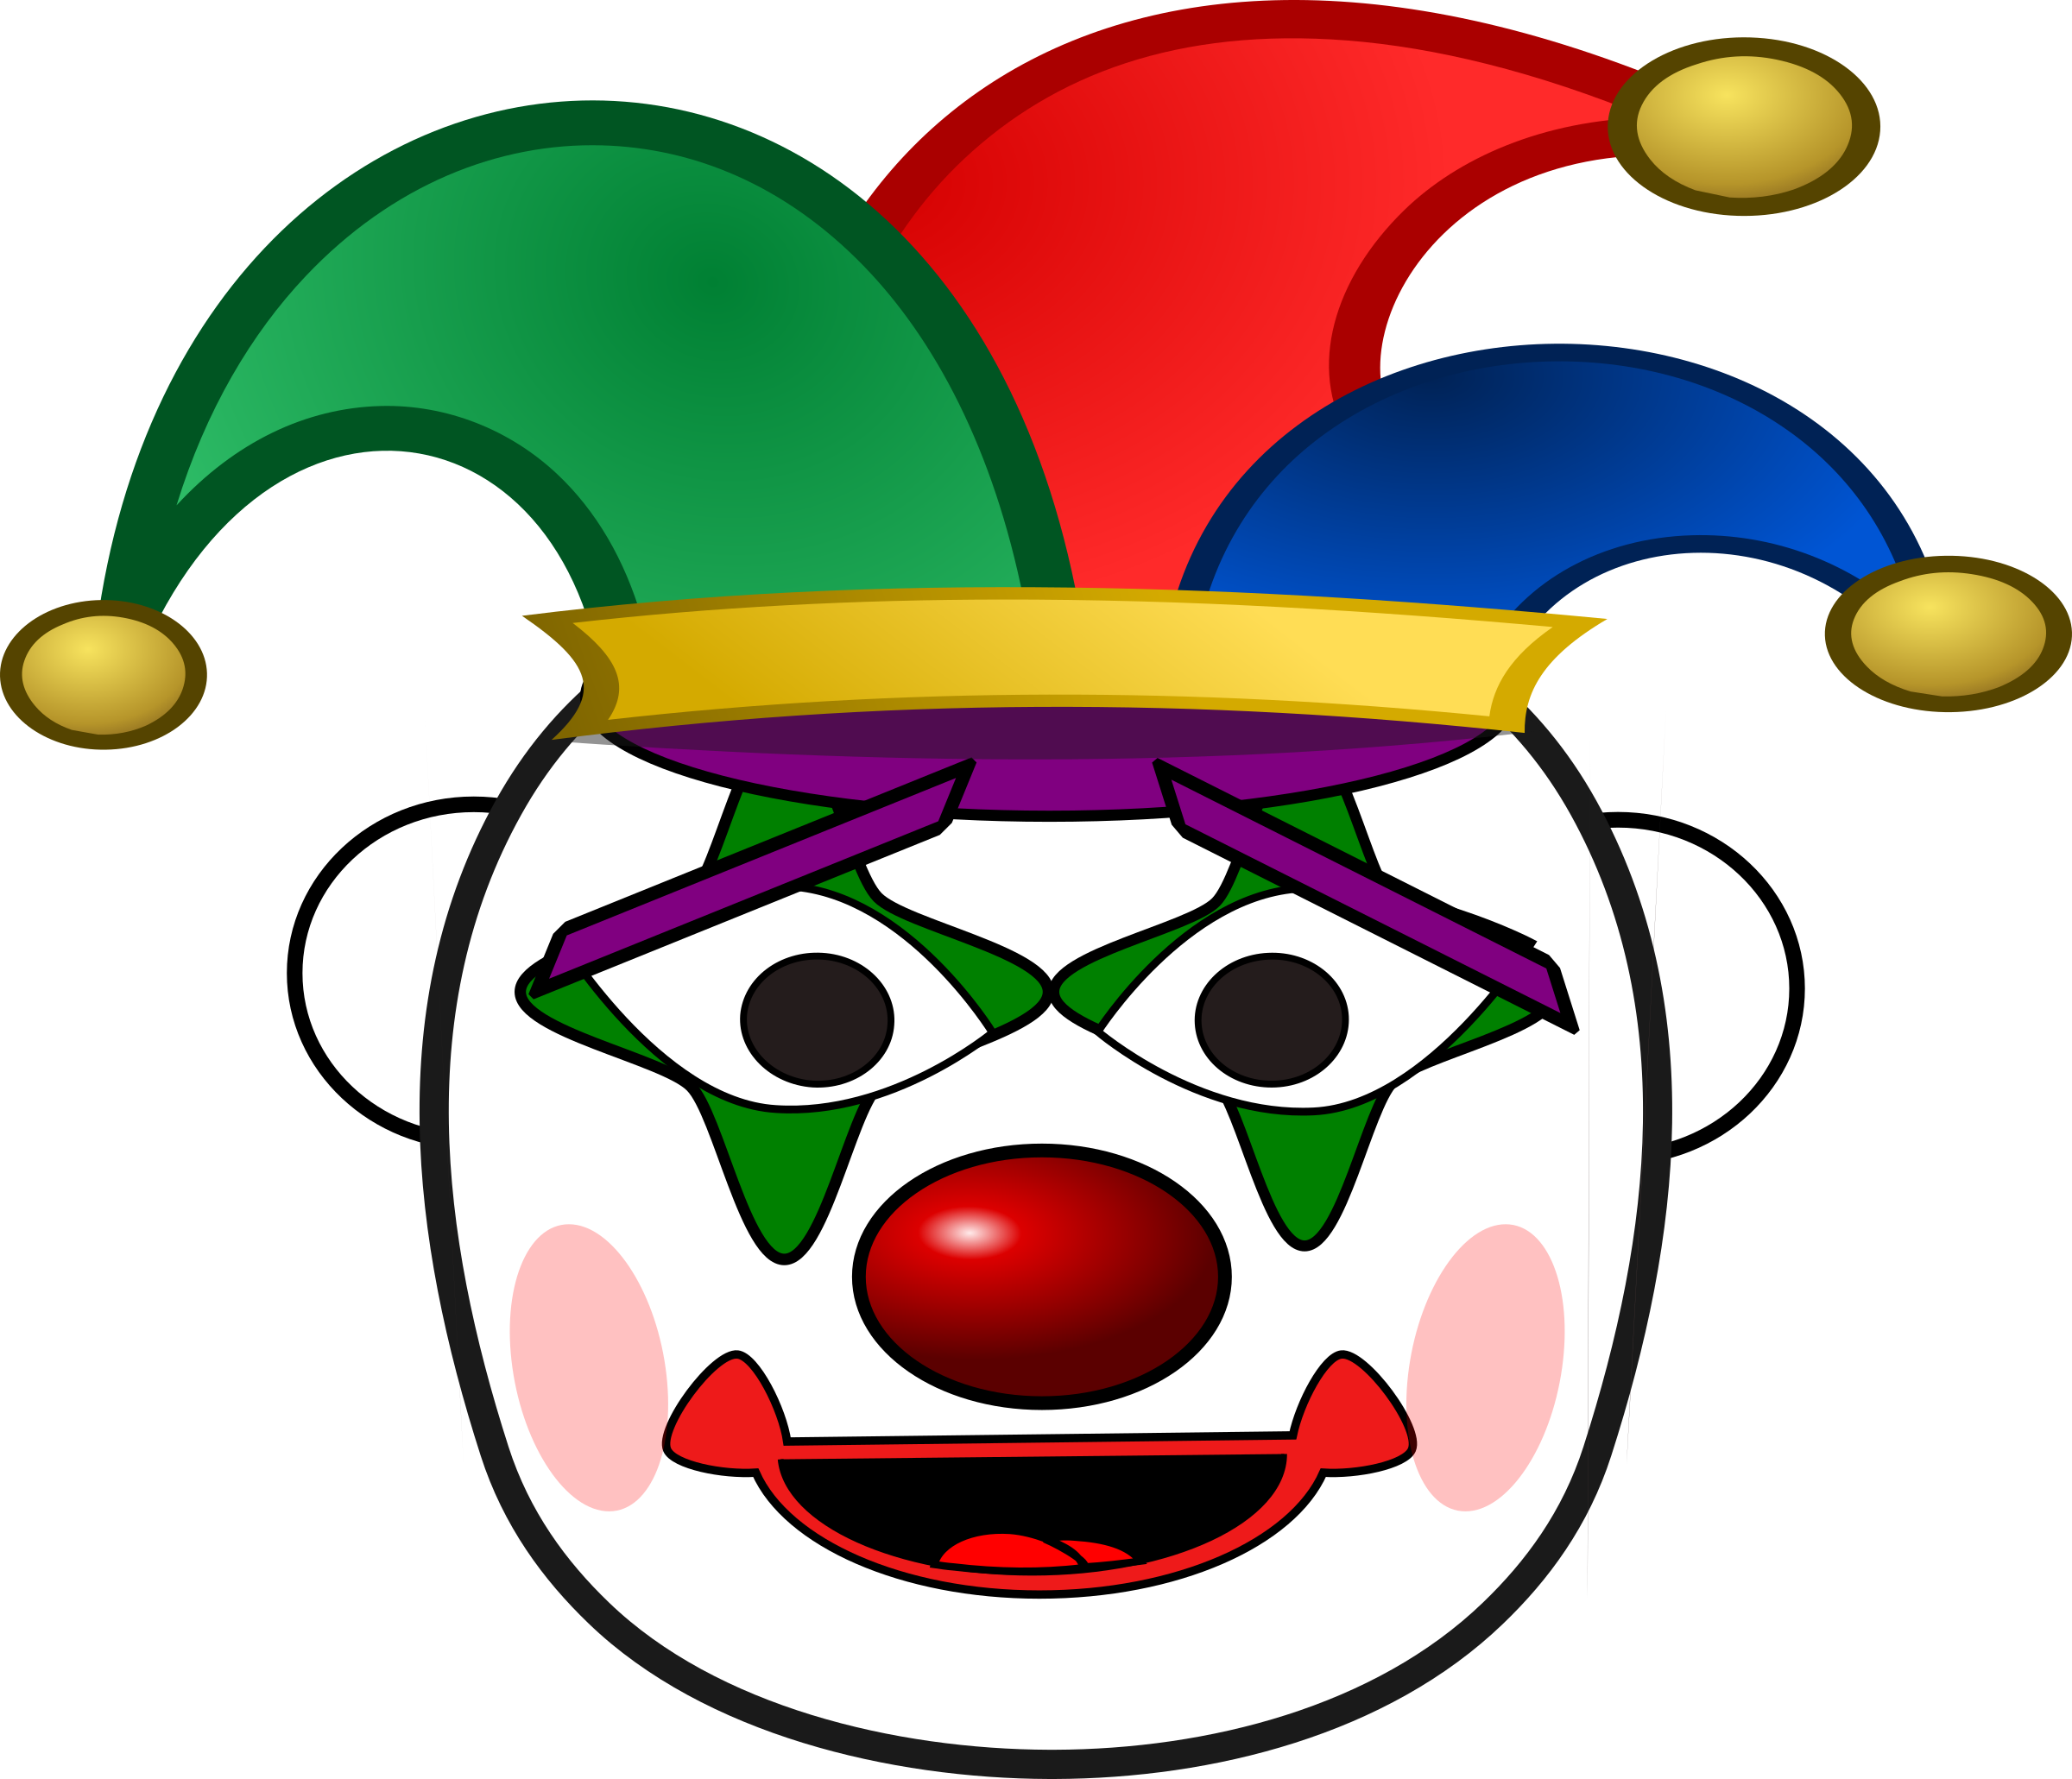 Big image png. Happy clipart clown